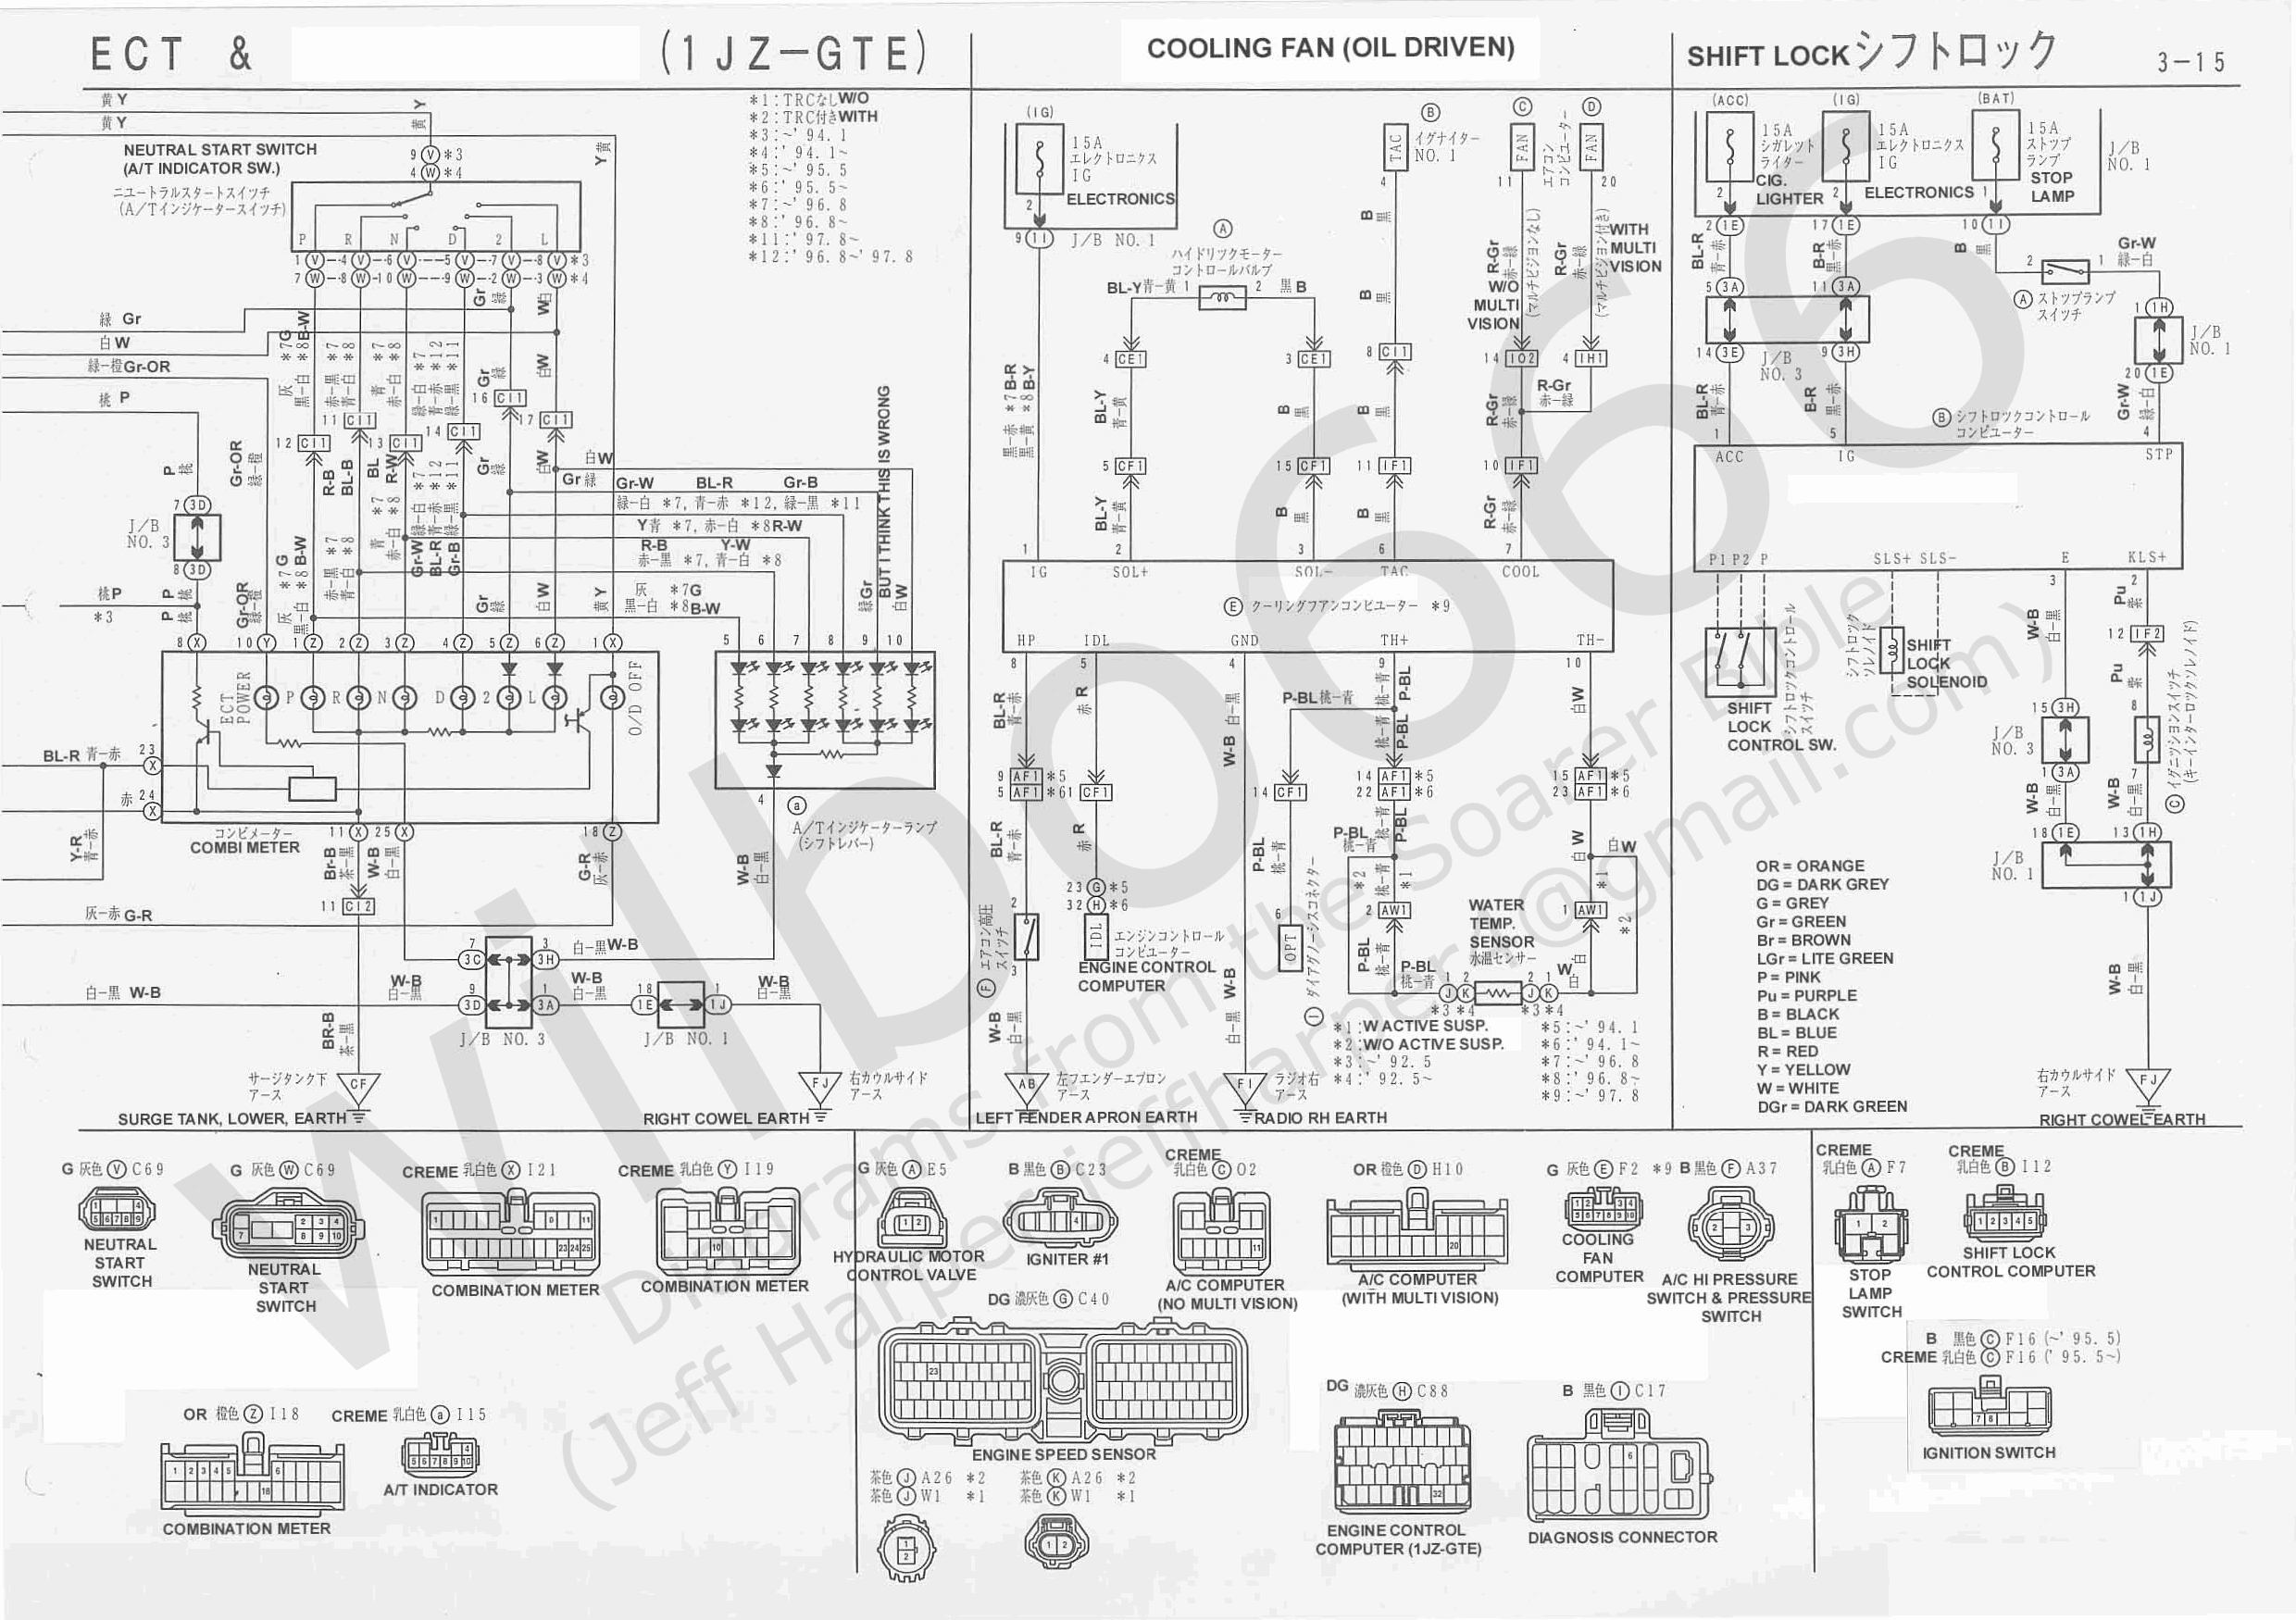 xZZ3x Electrical Wiring Diagram 6737105 3 15 wiring diagram for denso alternator the wiring diagram kia pregio 2004 wiring diagram at edmiracle.co